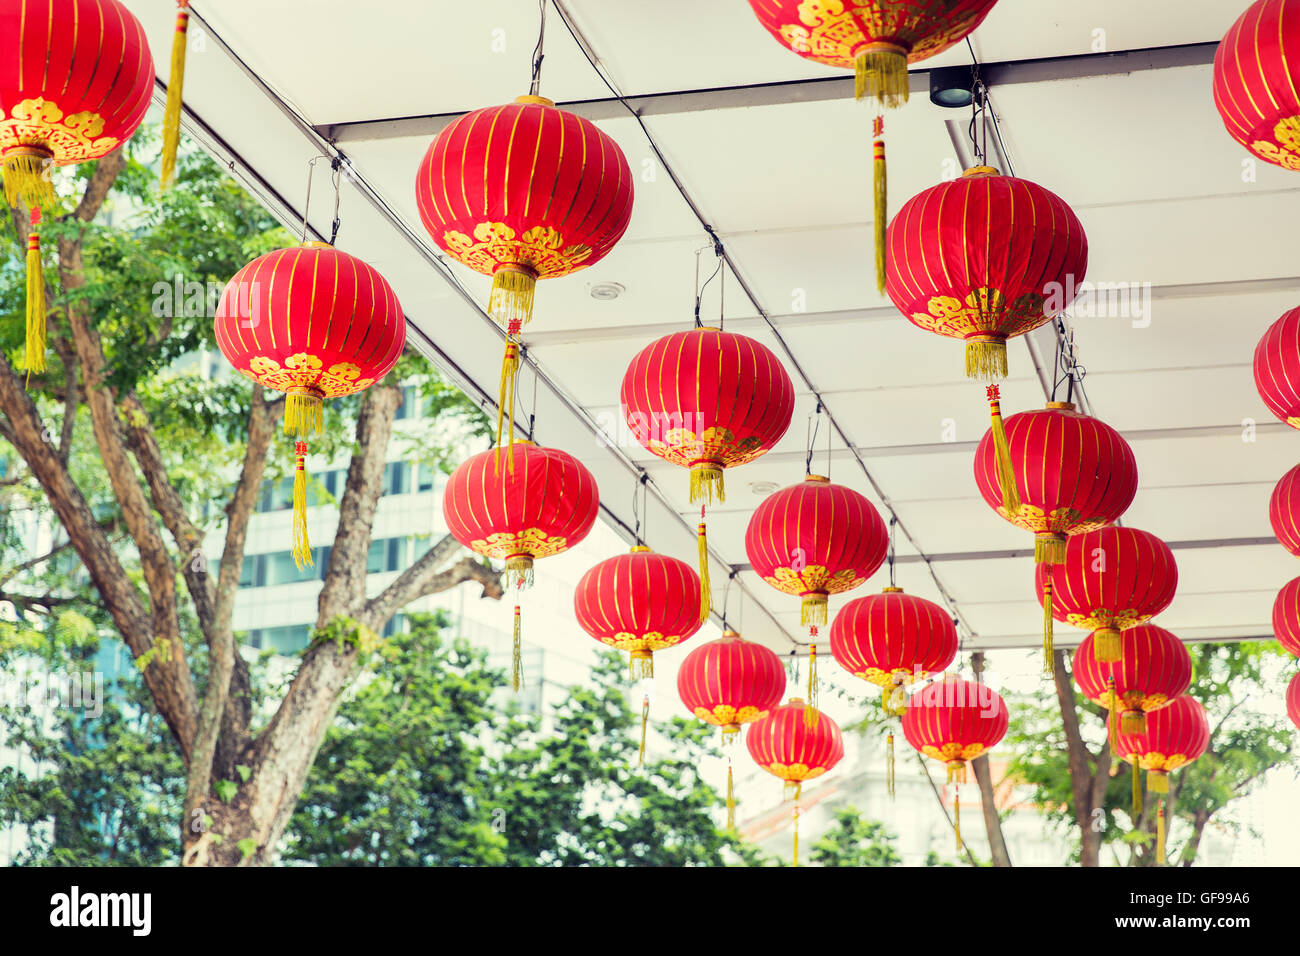 Ceiling Decorated With Hanging Chinese Lanterns Stock Photo